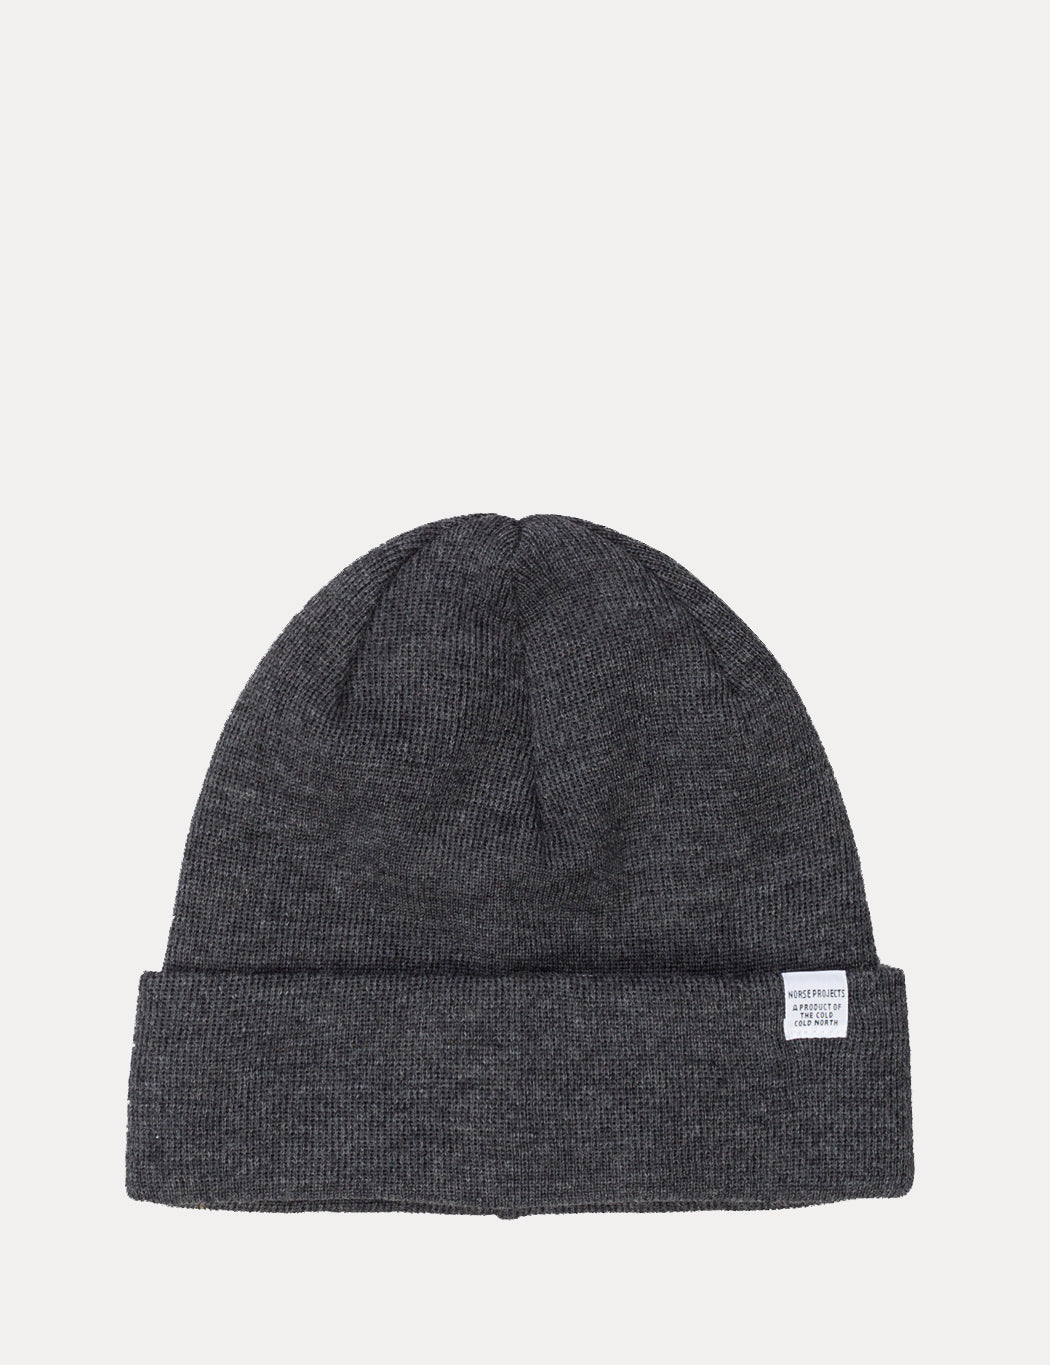 18342173d Norse Projects Top Beanie Hat - Charcoal Grey Melange